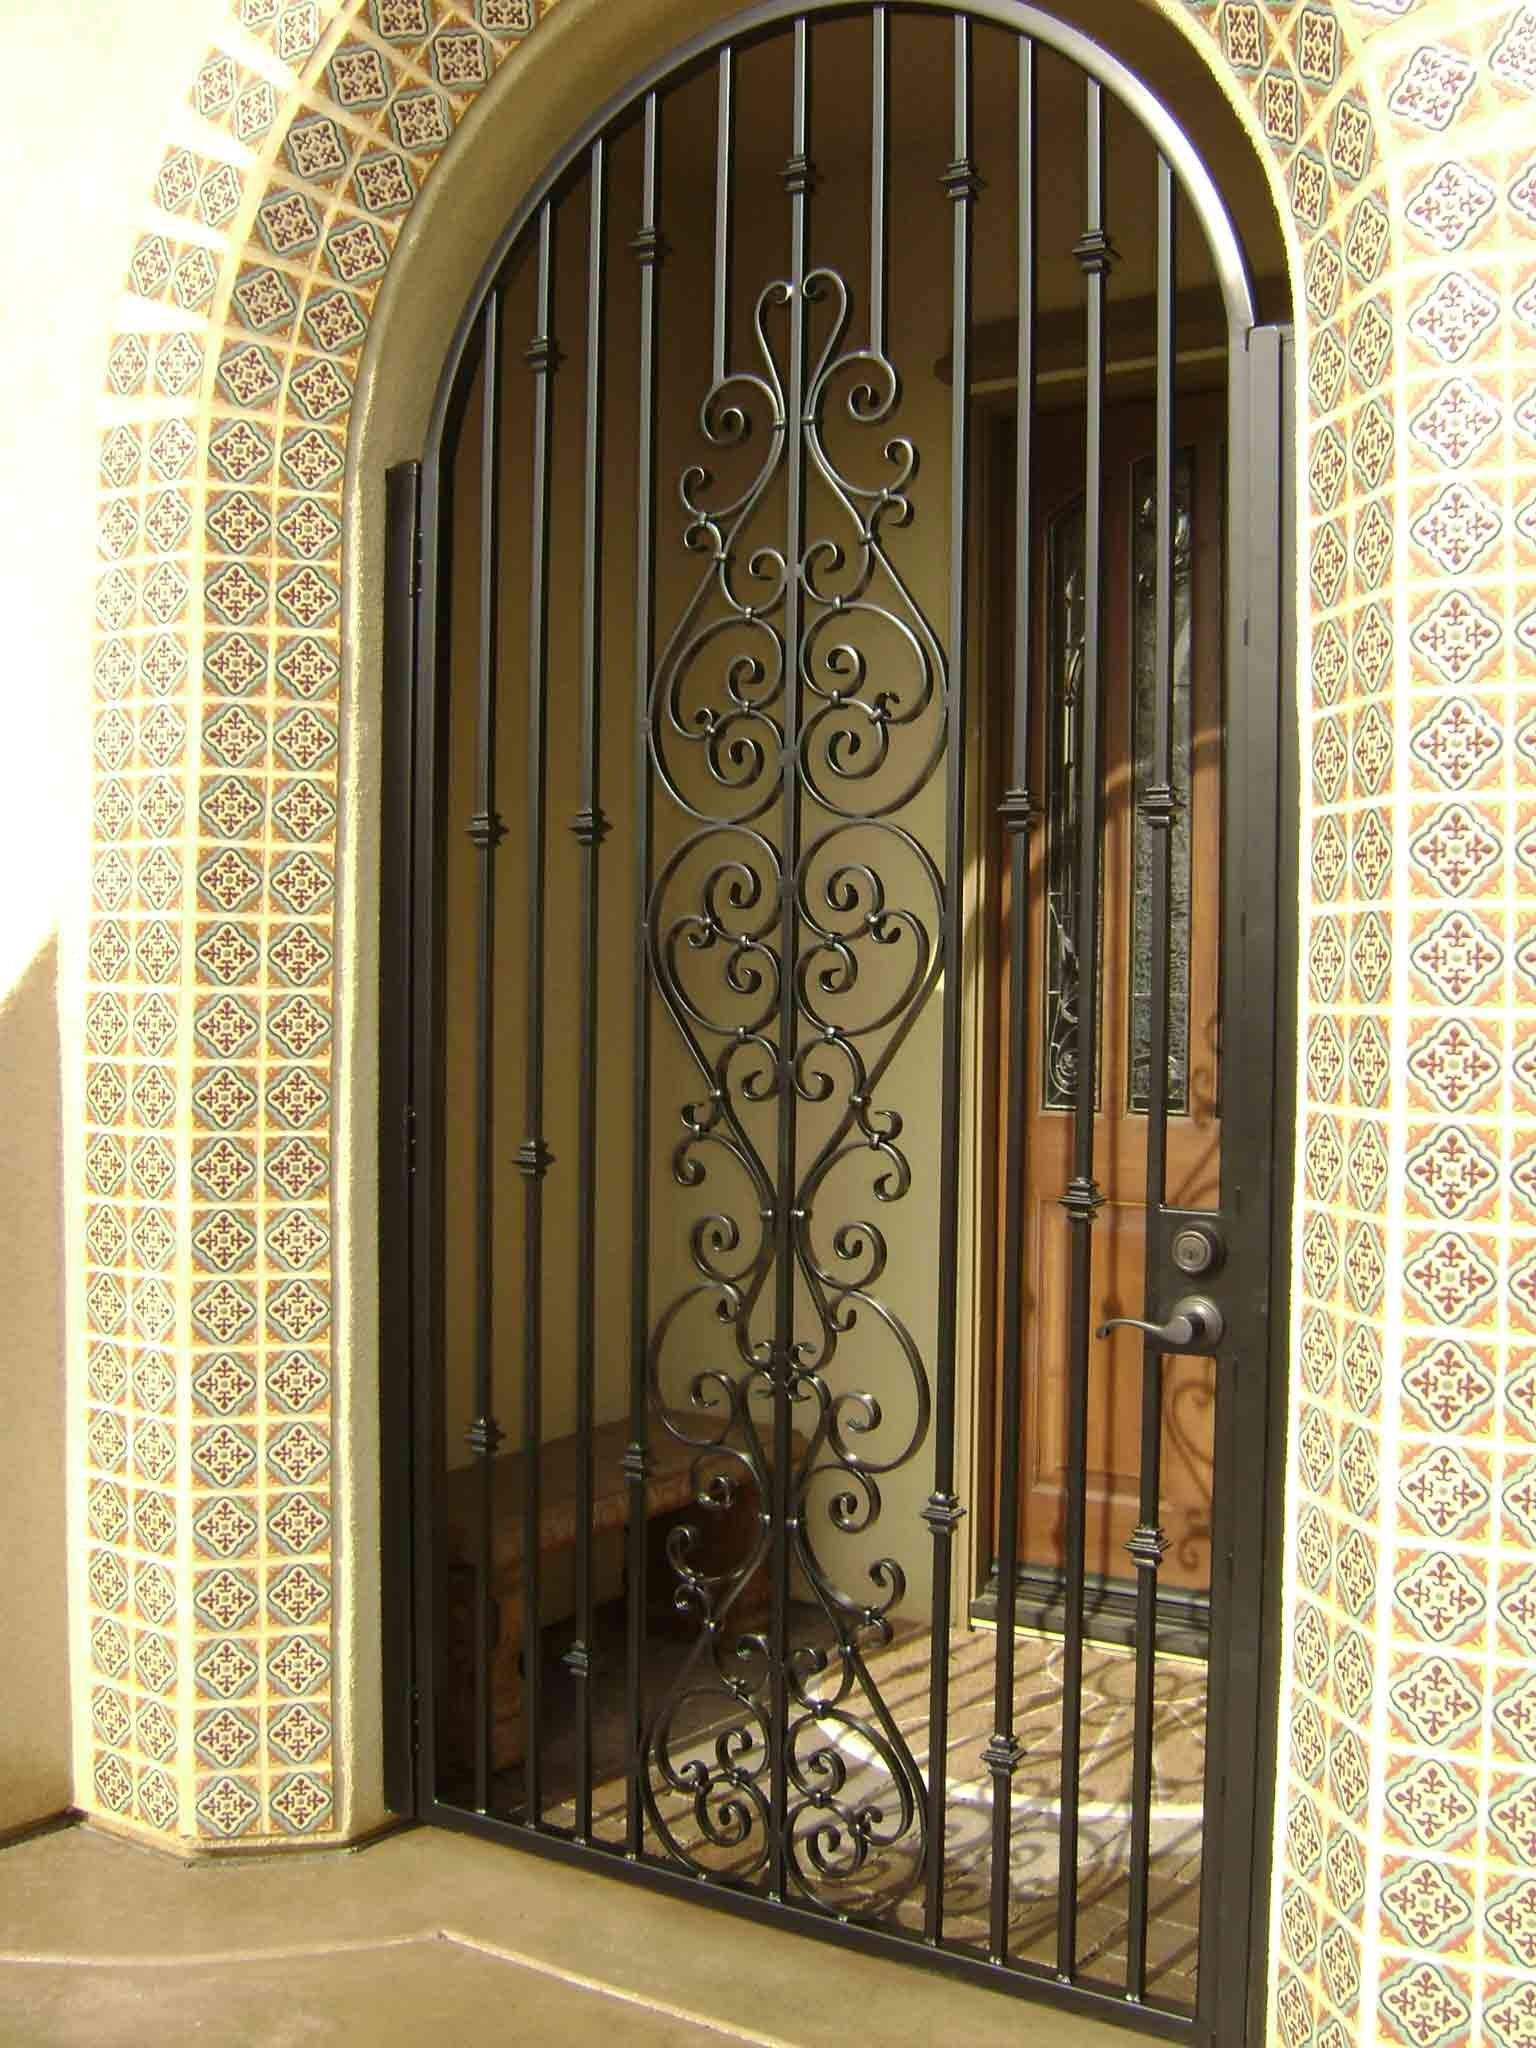 Decorative Security Bars For Windows And Doors | http://franzdondi ...